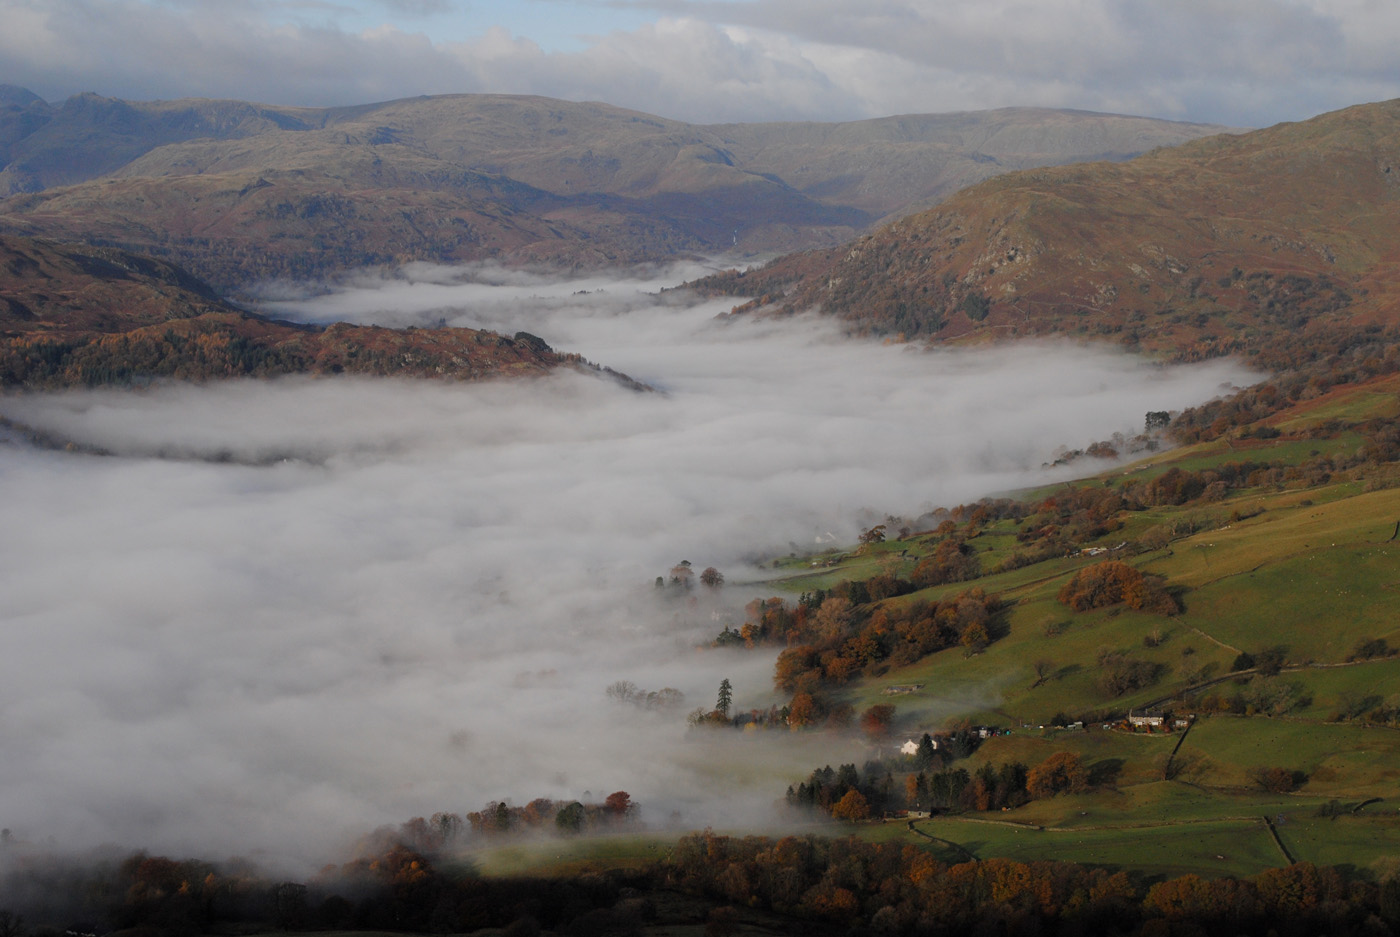 'Rising mist above Ambleside' by Dave Horscroft